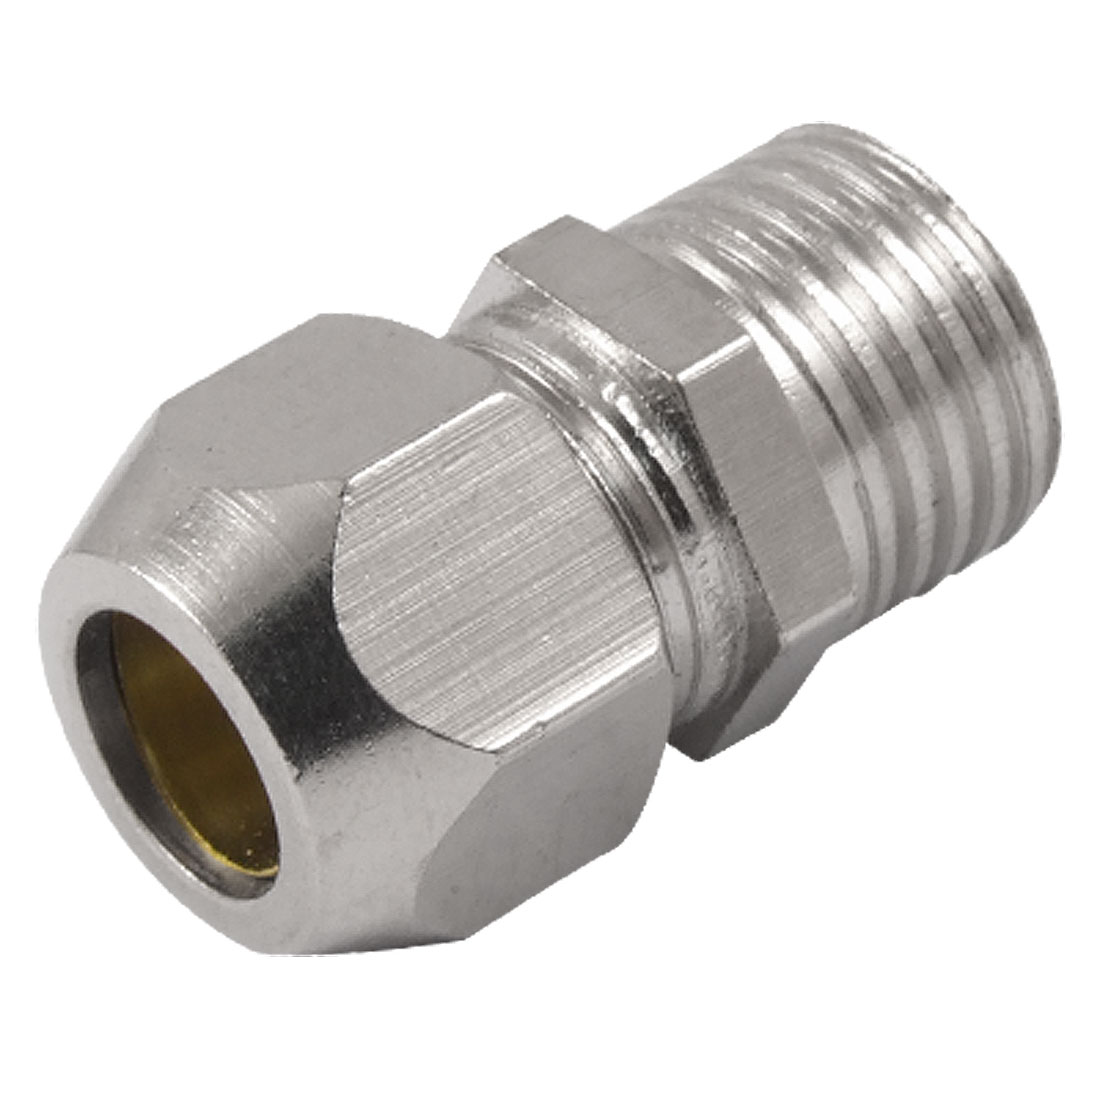 "1/2"" Thread 5/16"" Pneumatic Pipe Compression Fitting Straight Coupler"